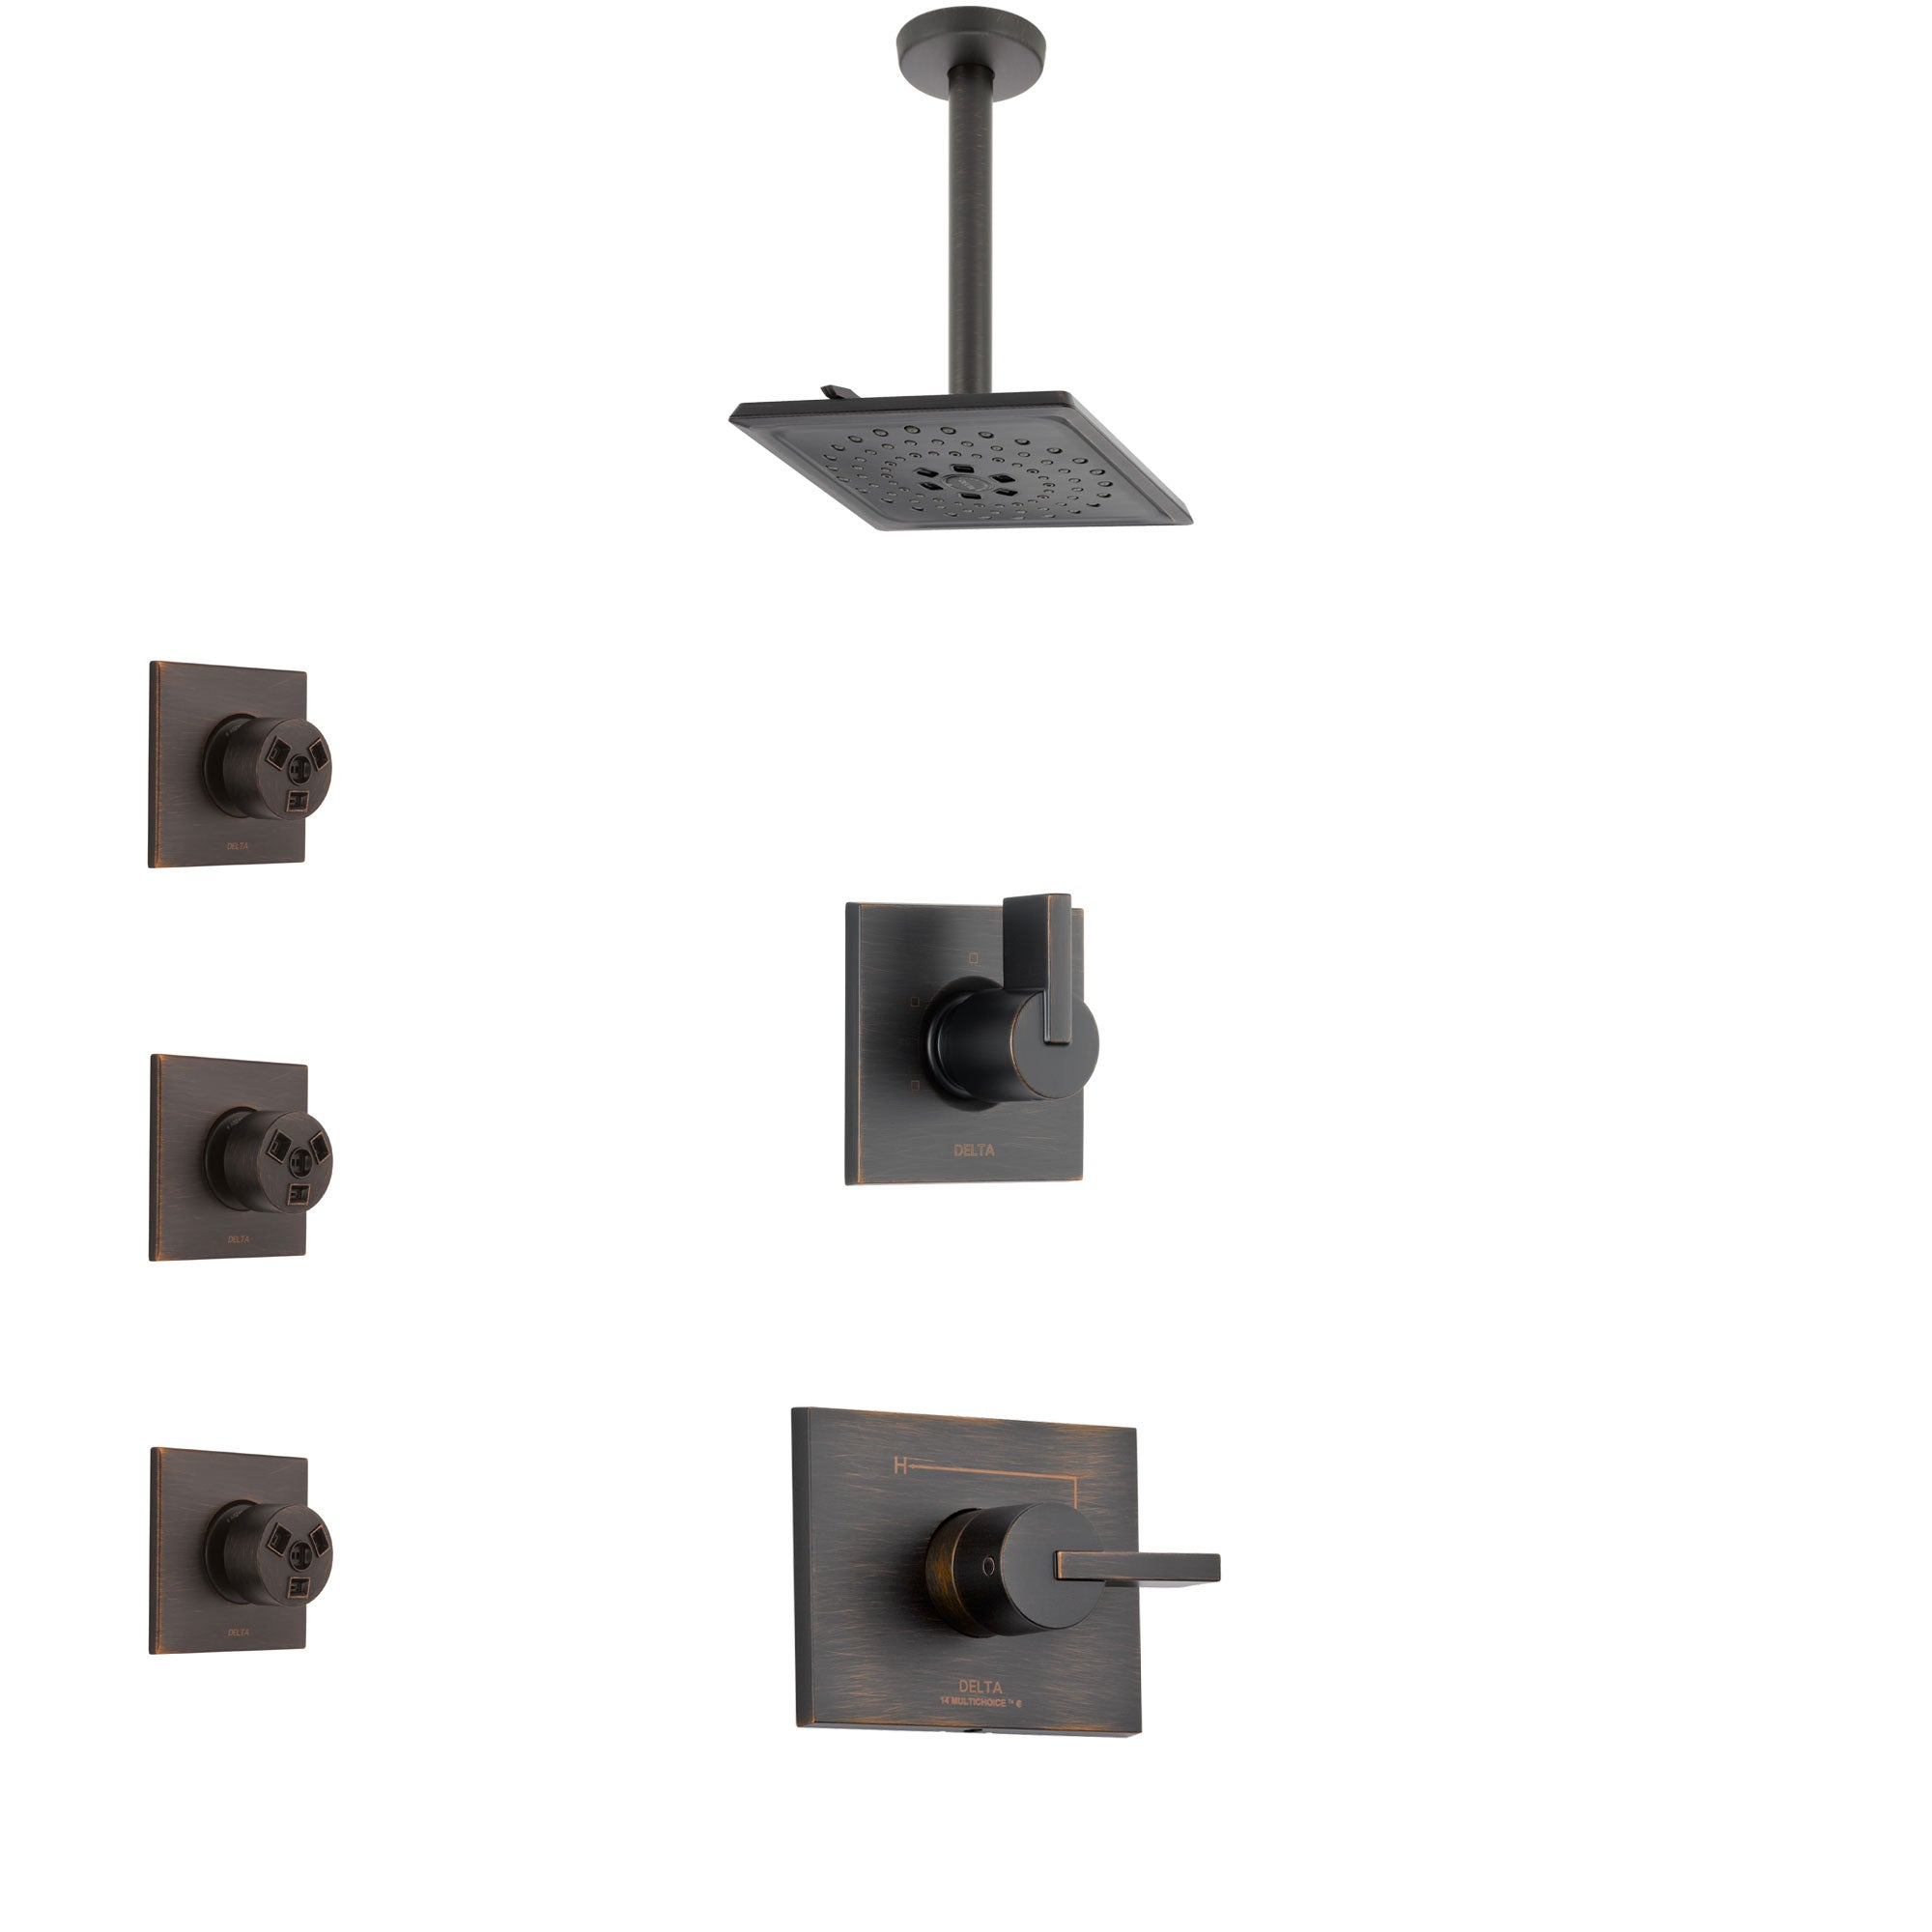 Delta Vero Venetian Bronze Finish Shower System with Control Handle, 3-Setting Diverter, Ceiling Mount Showerhead, and 3 Body Sprays SS1453RB7